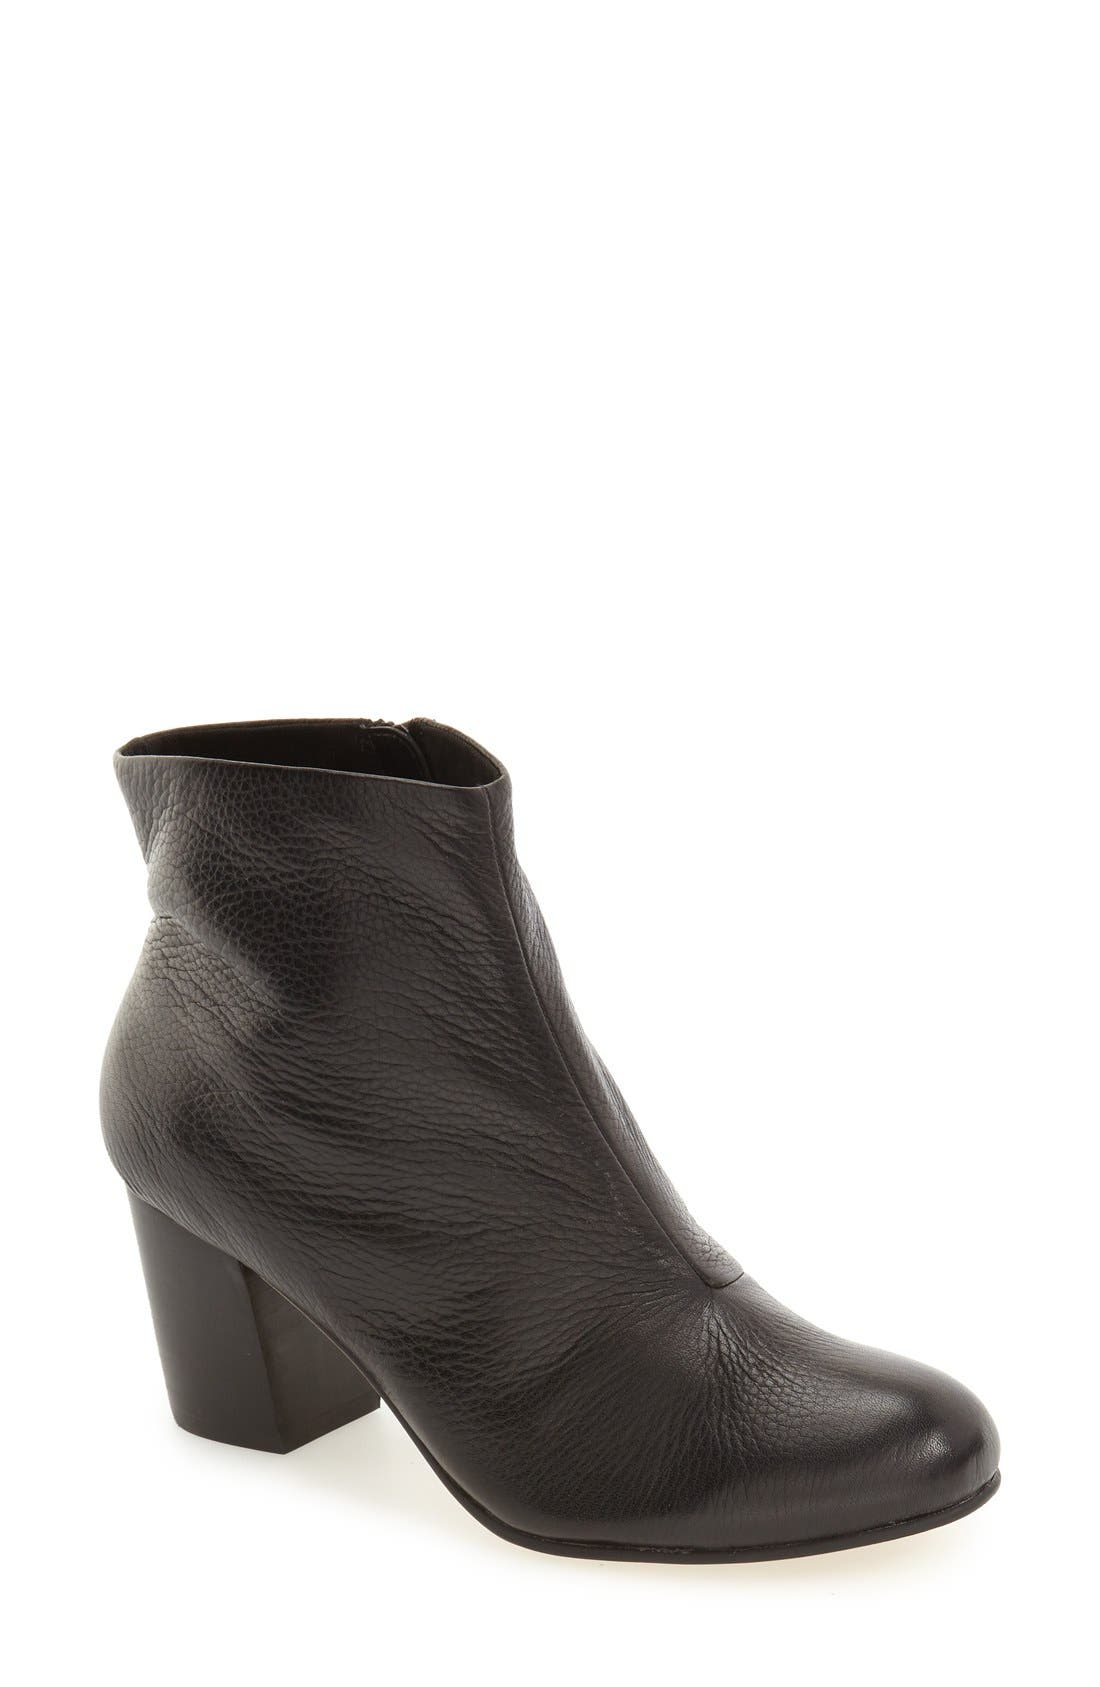 Alternate Image 1 Selected - Sole Society 'Violette' Bootie (Women)